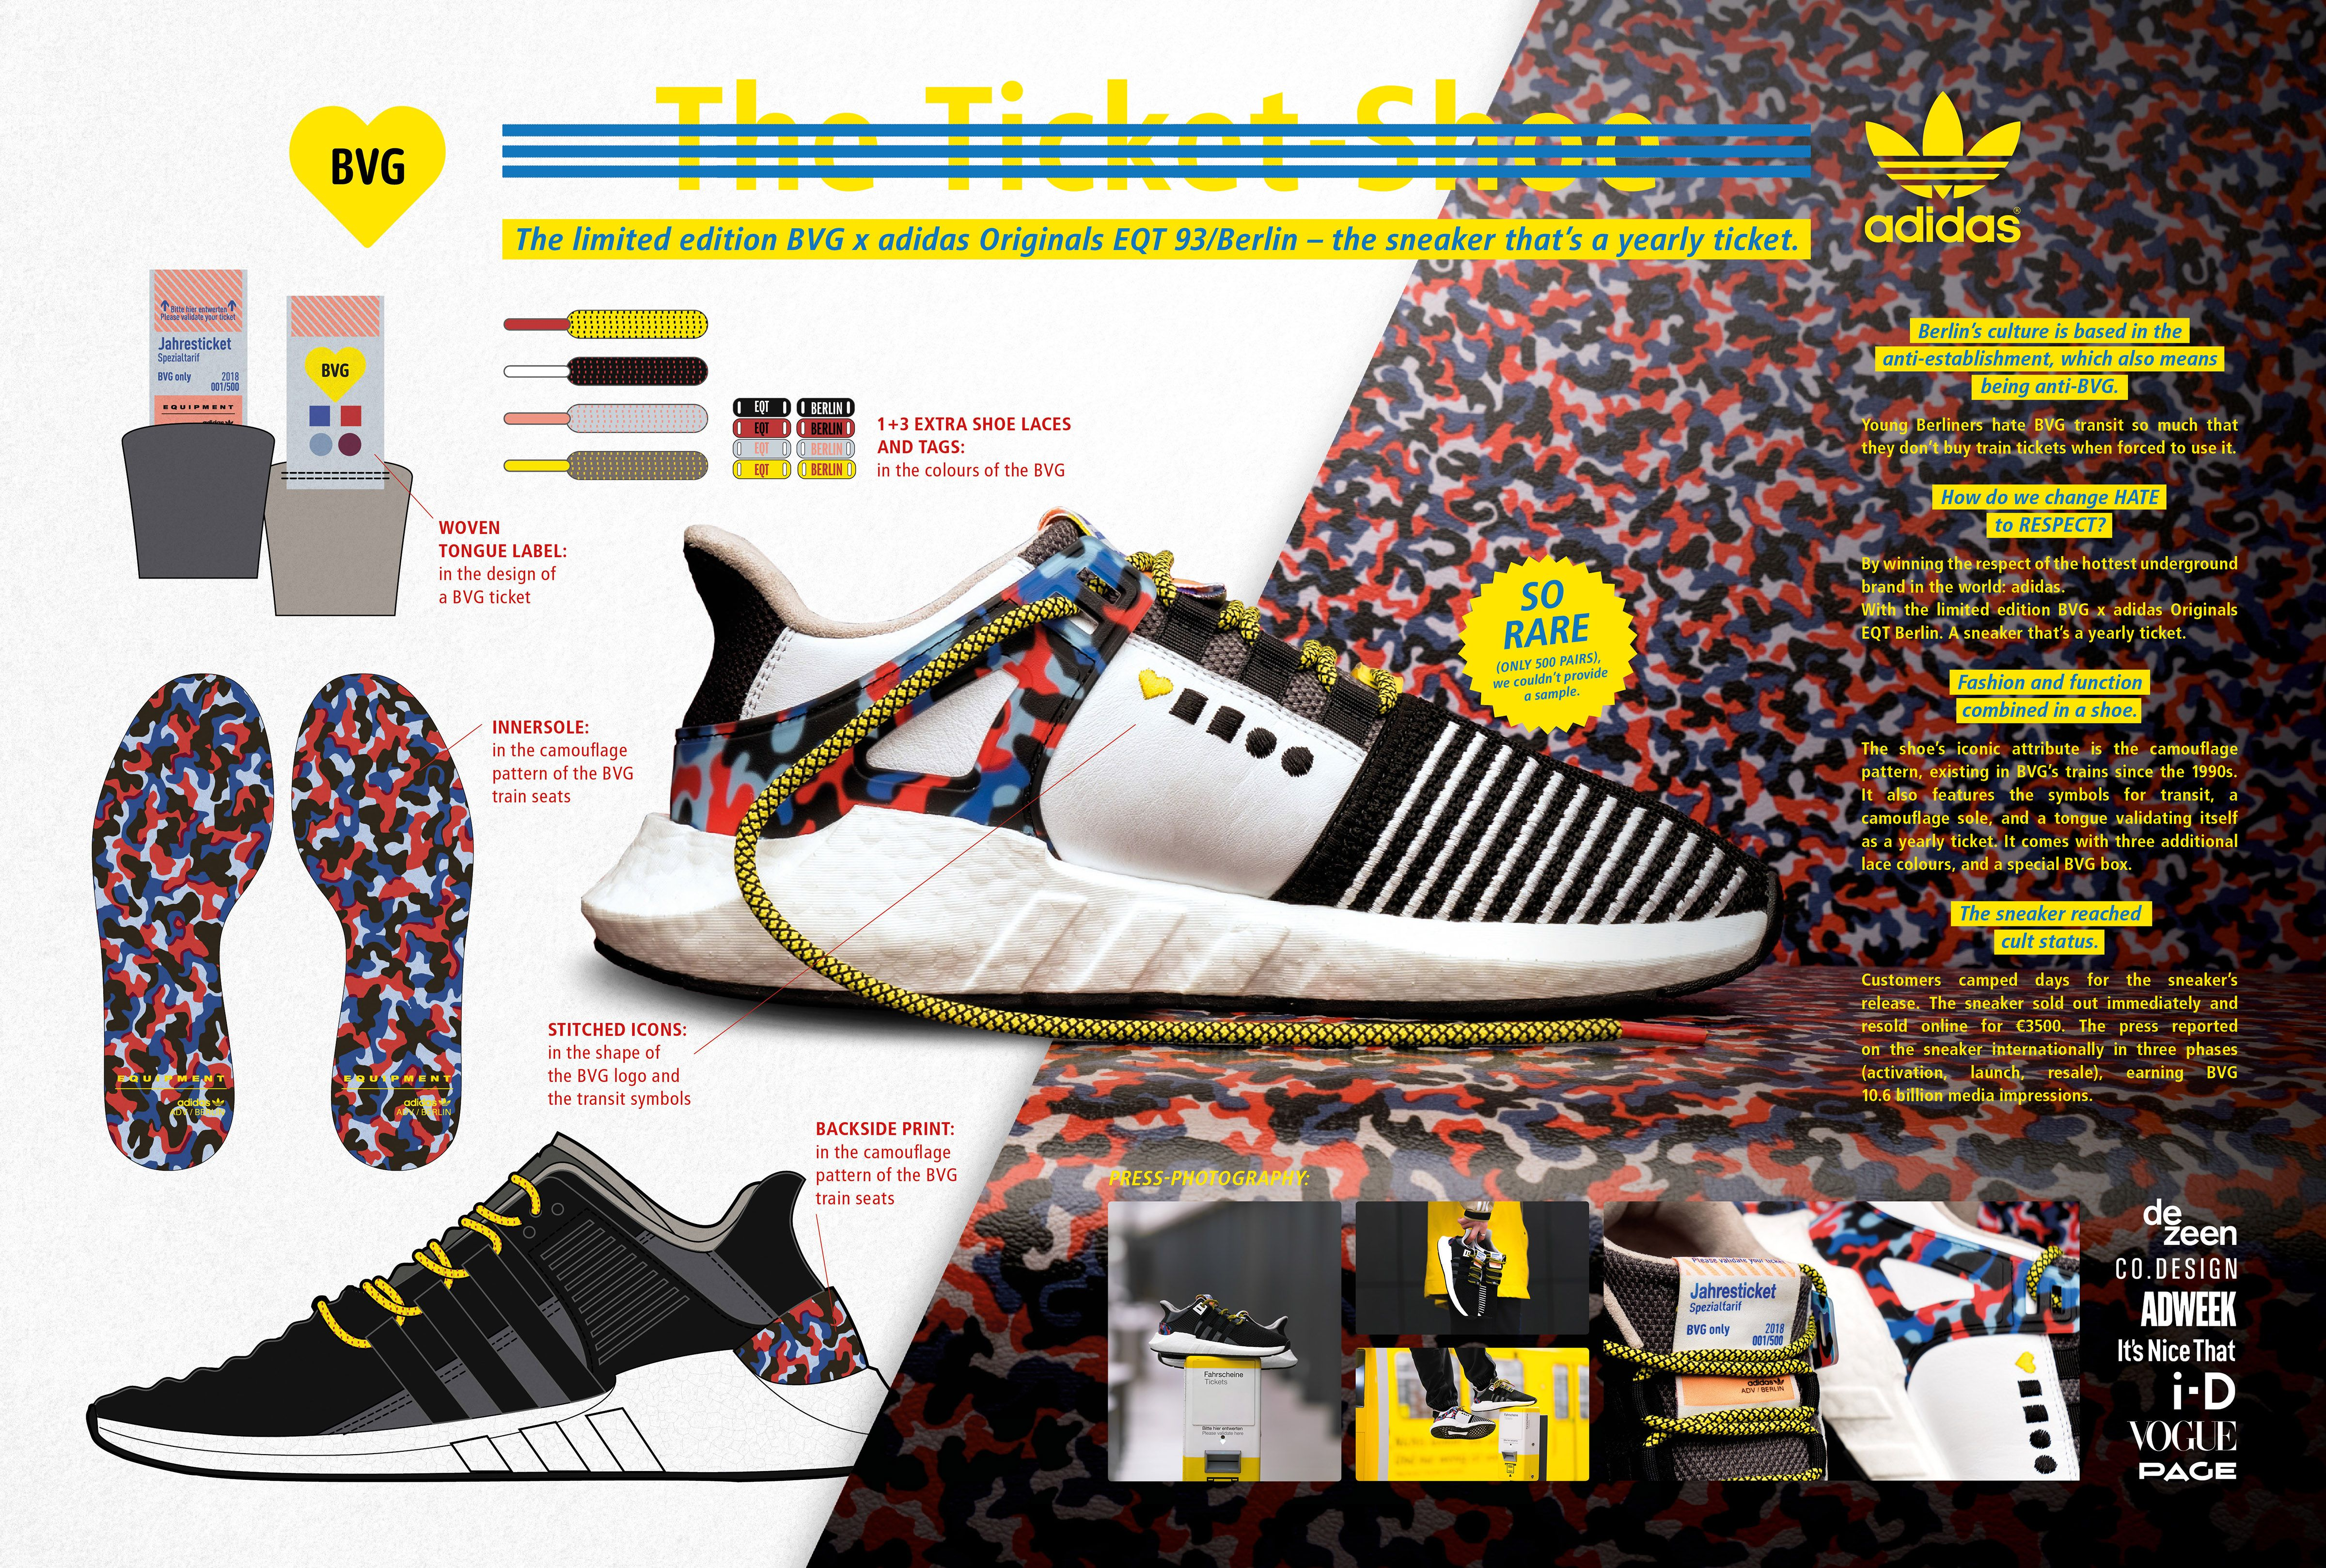 Thumbnail for BVG x adidas – The ticket